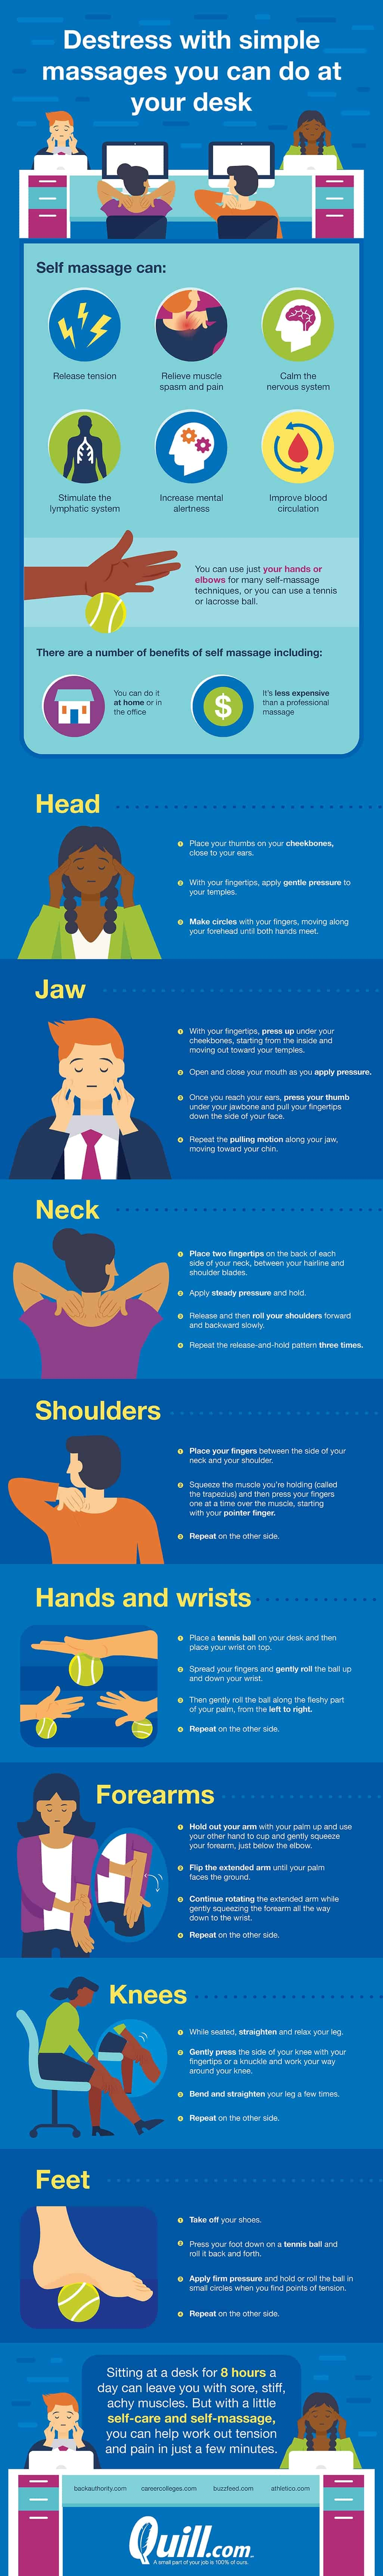 Destress With These Simple Massages You Can Do at Your Desk